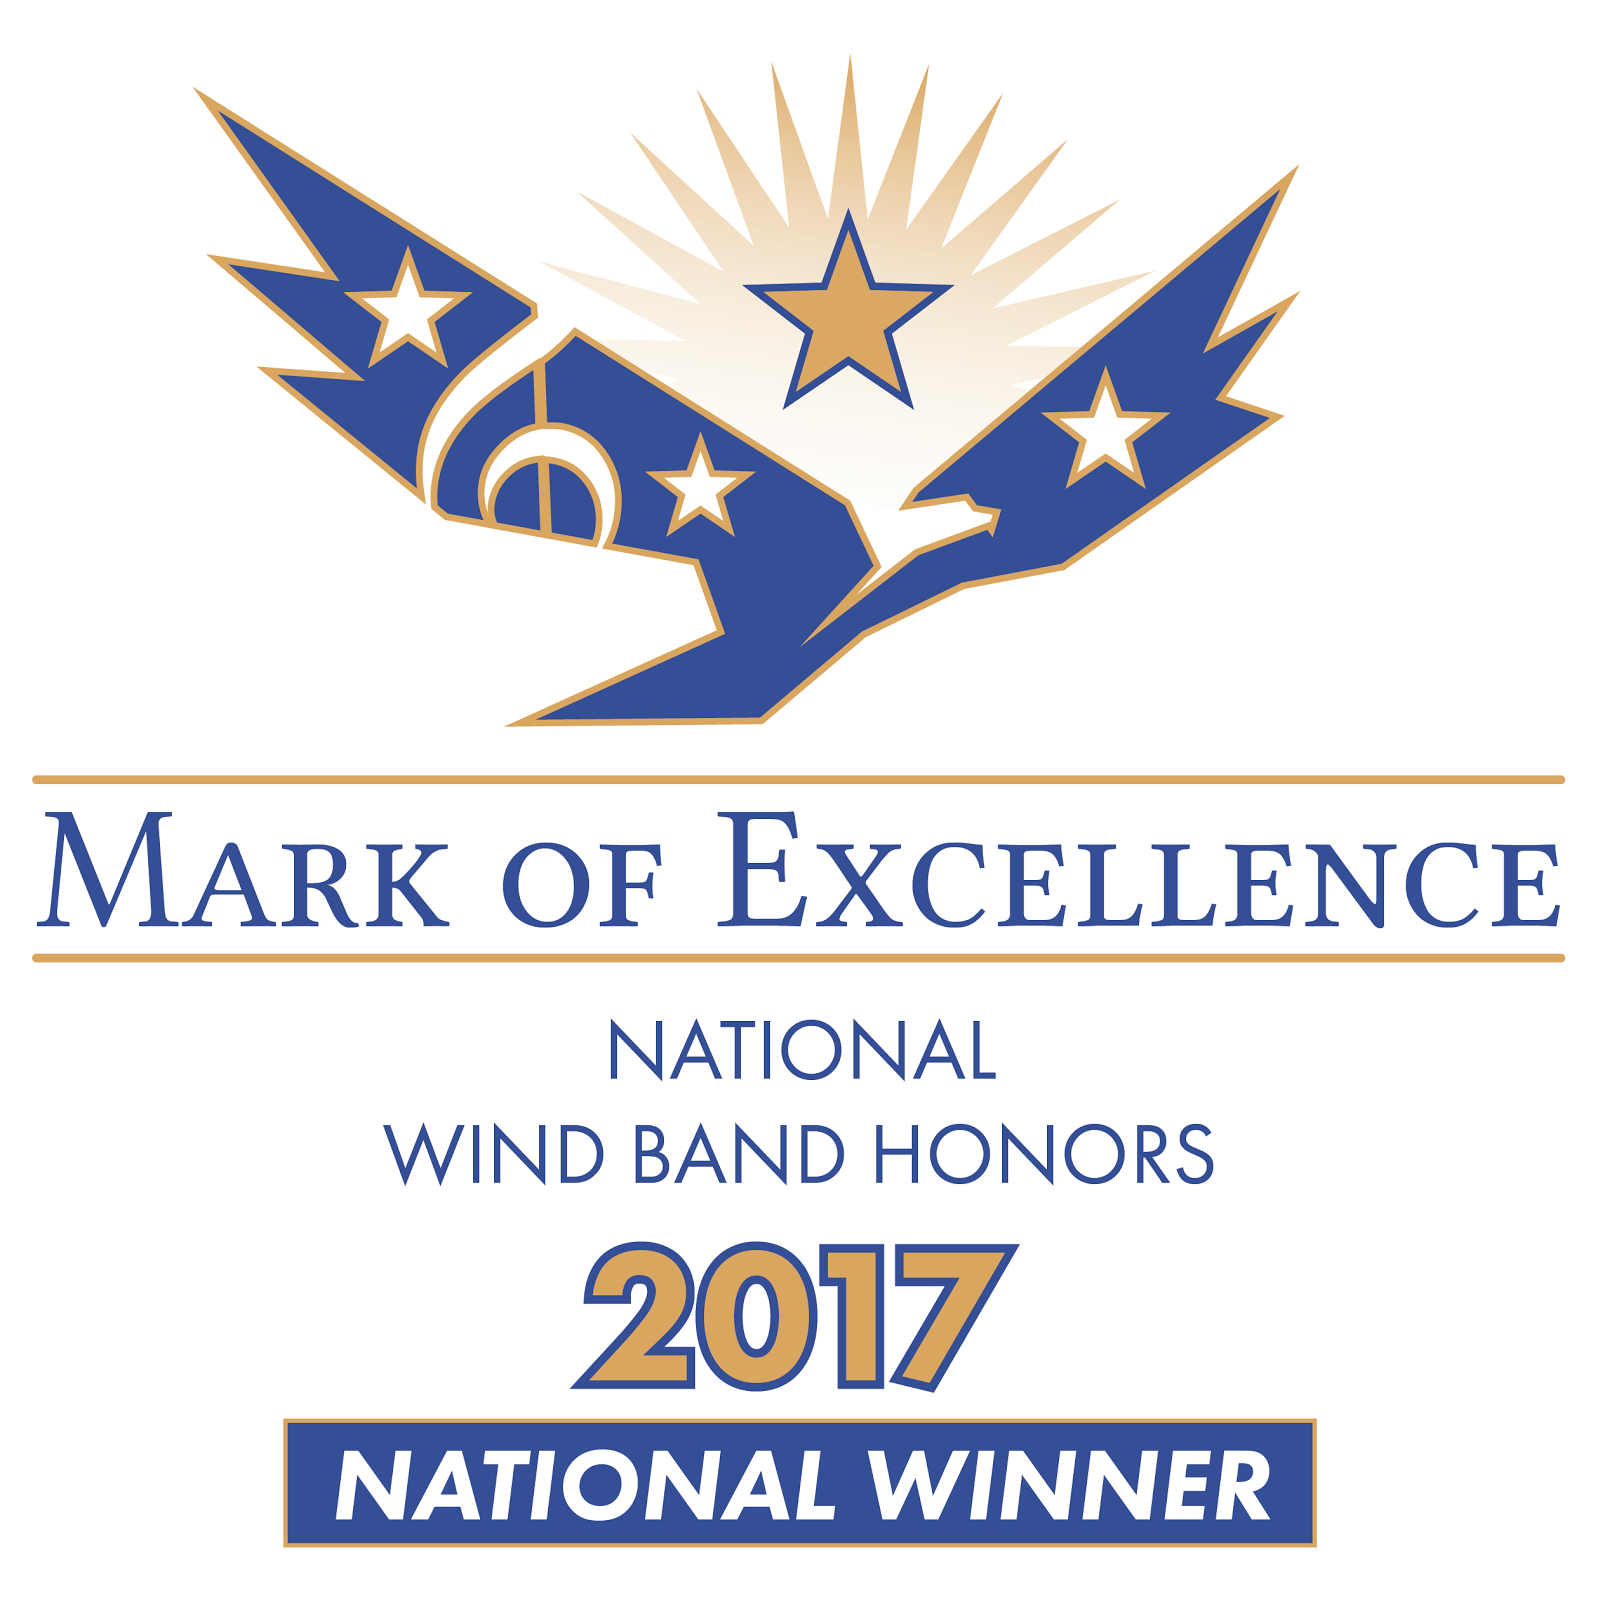 Mark of Excellence National Winner